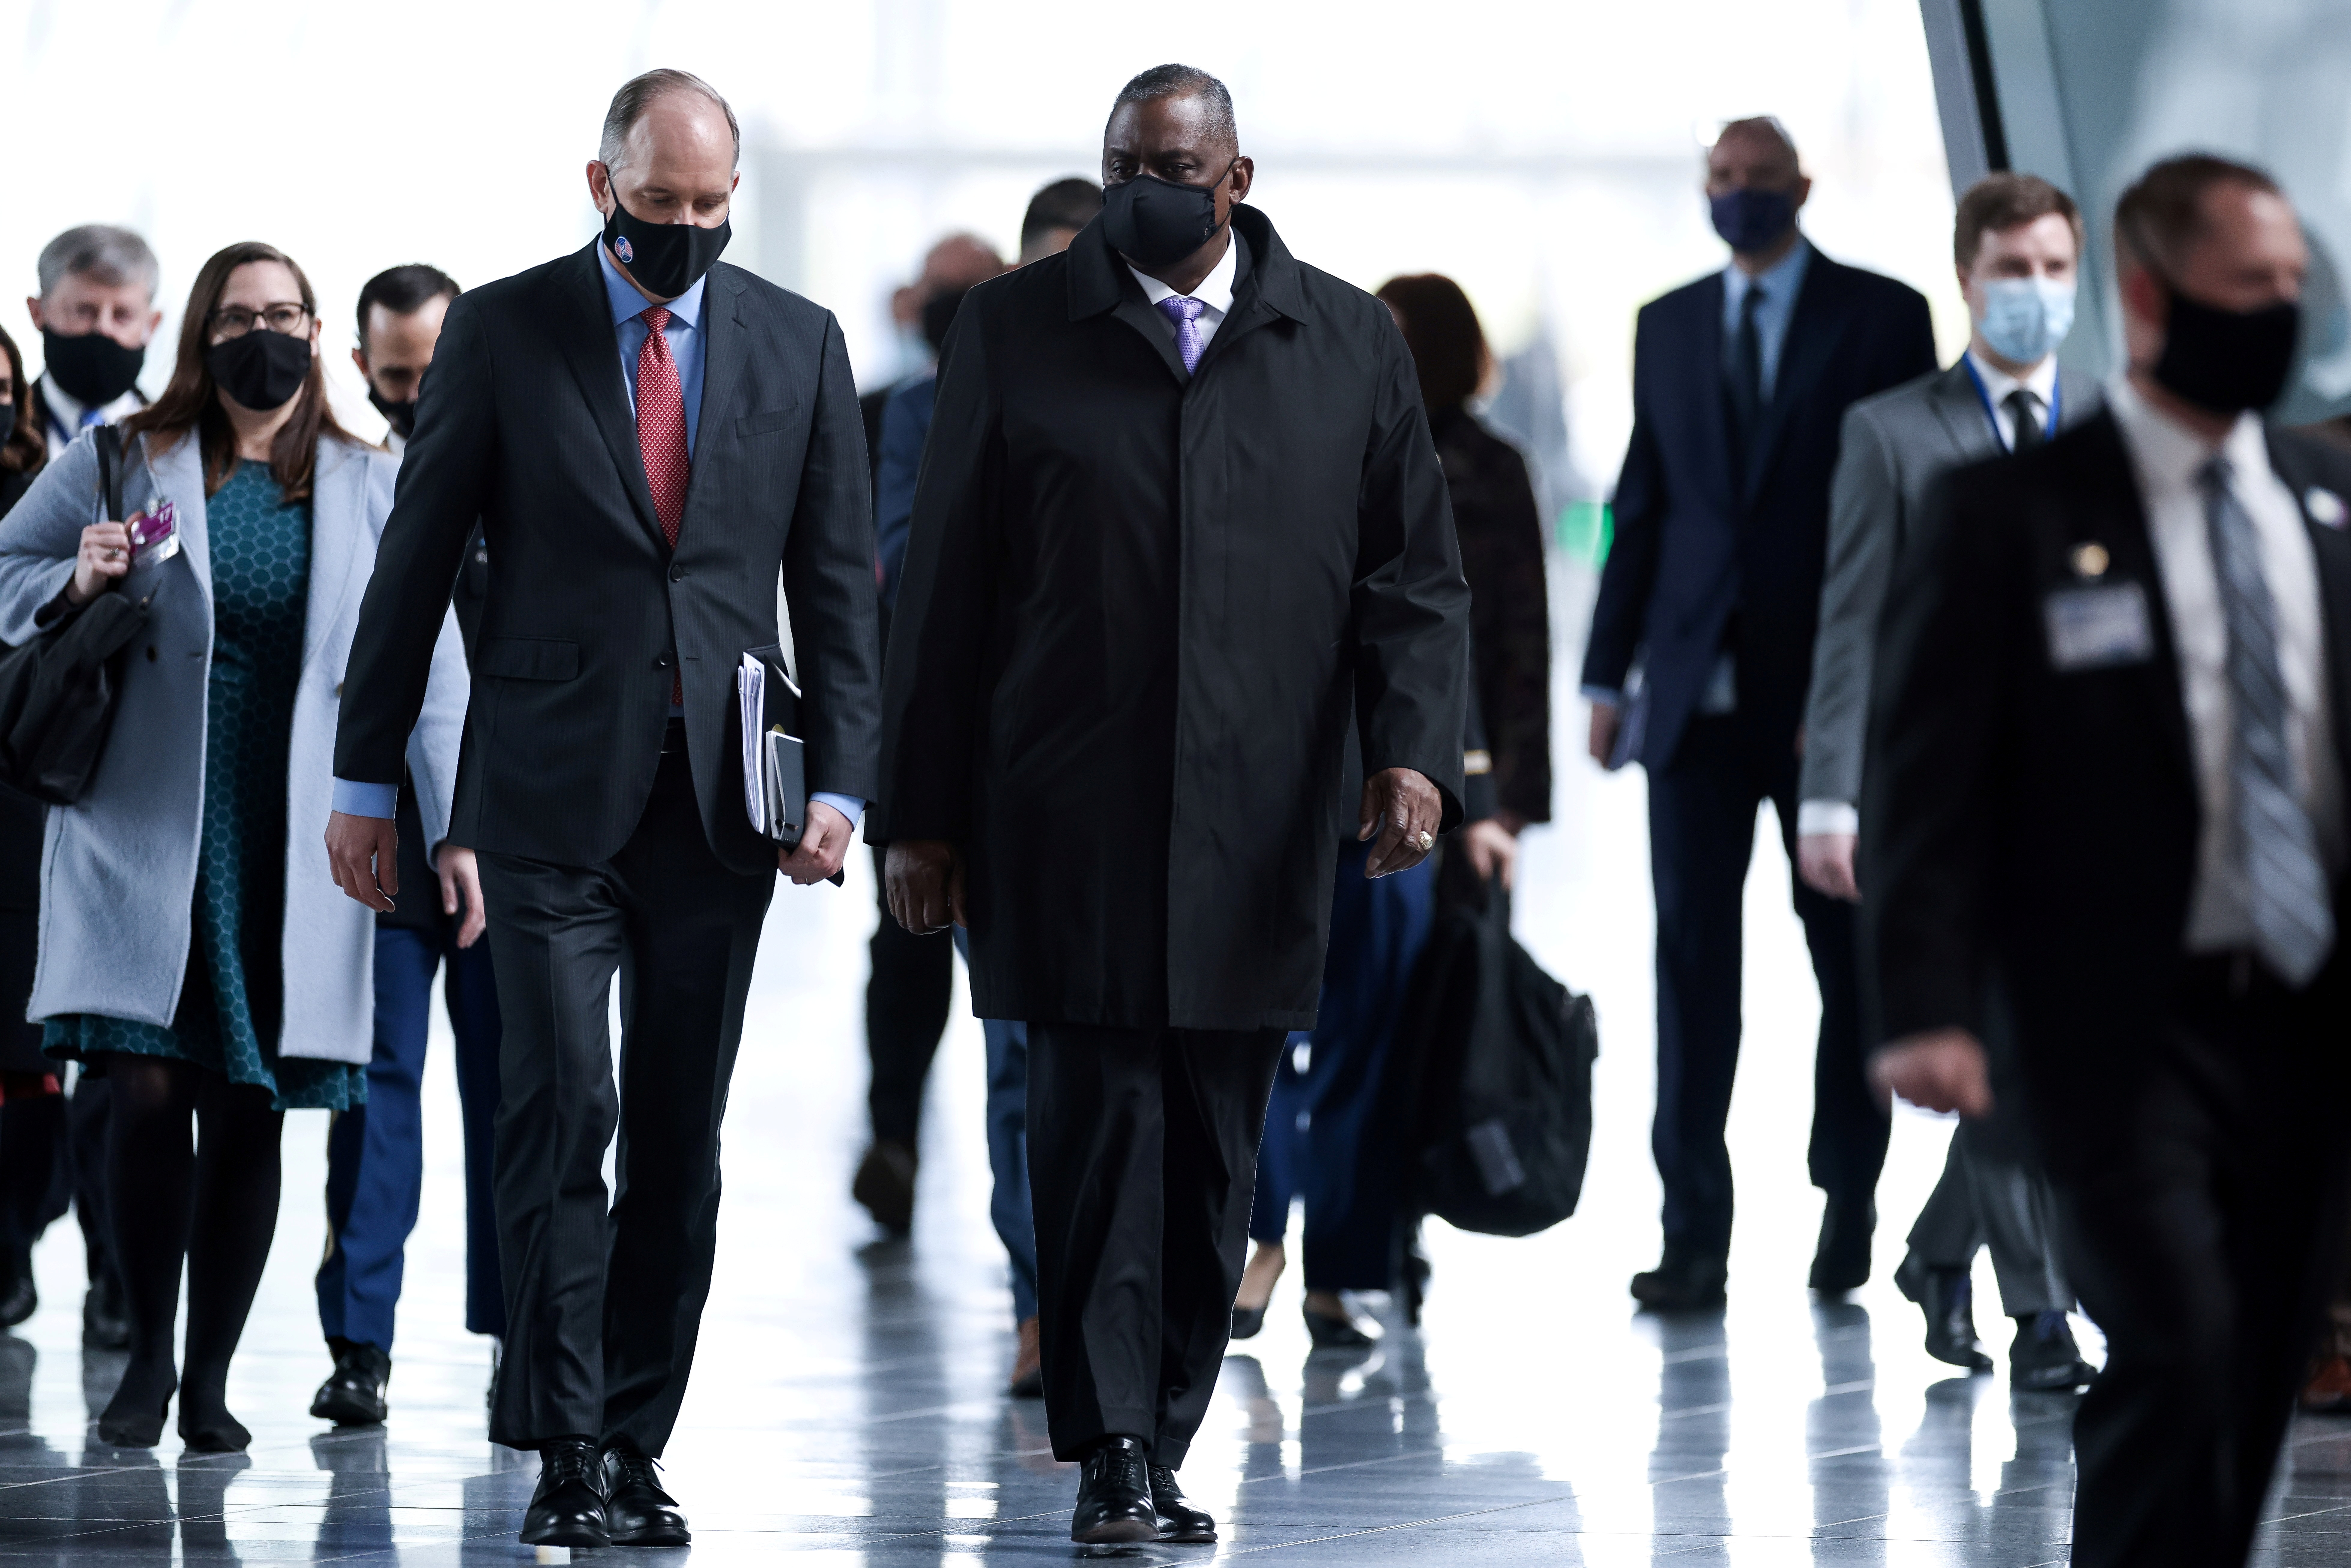 U.S. Defence Secretary Lloyd Austin arrives for a meeting of foreign ministers of the U.S., Britain, France and Germany on Afghanistan at NATO's headquarters in Brussels, Belgium, April 14, 2021. Kenzo Tribouillard/Pool via Reuters